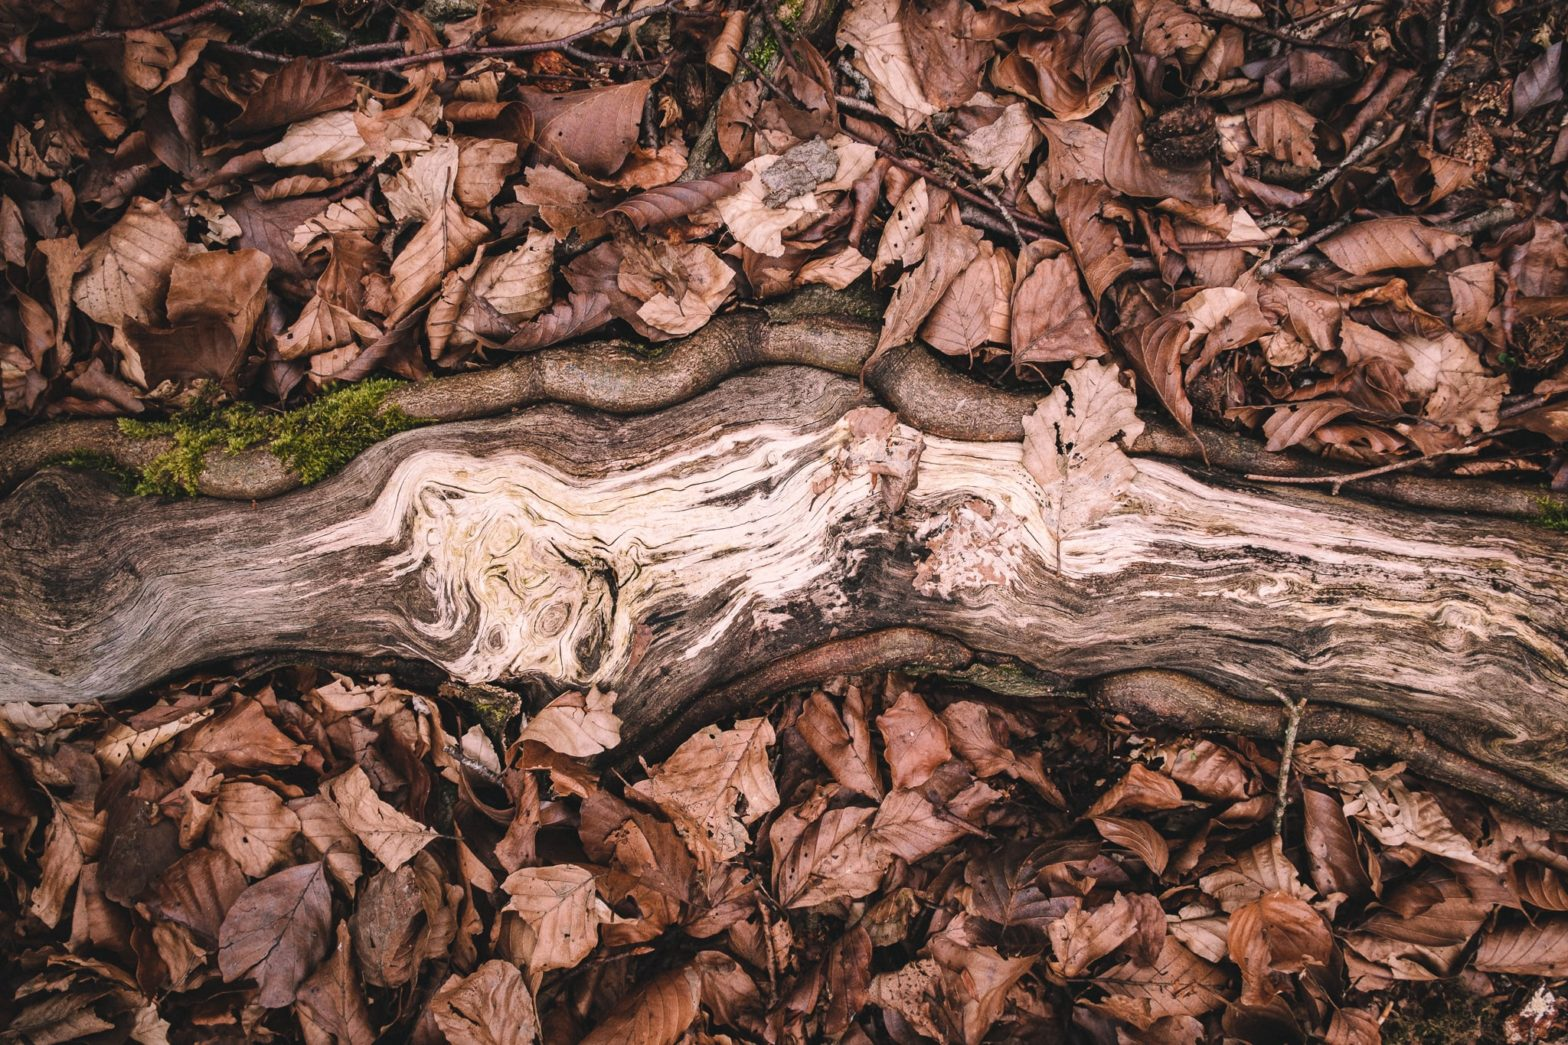 A weathered root in the forest surrounded by dry leaves